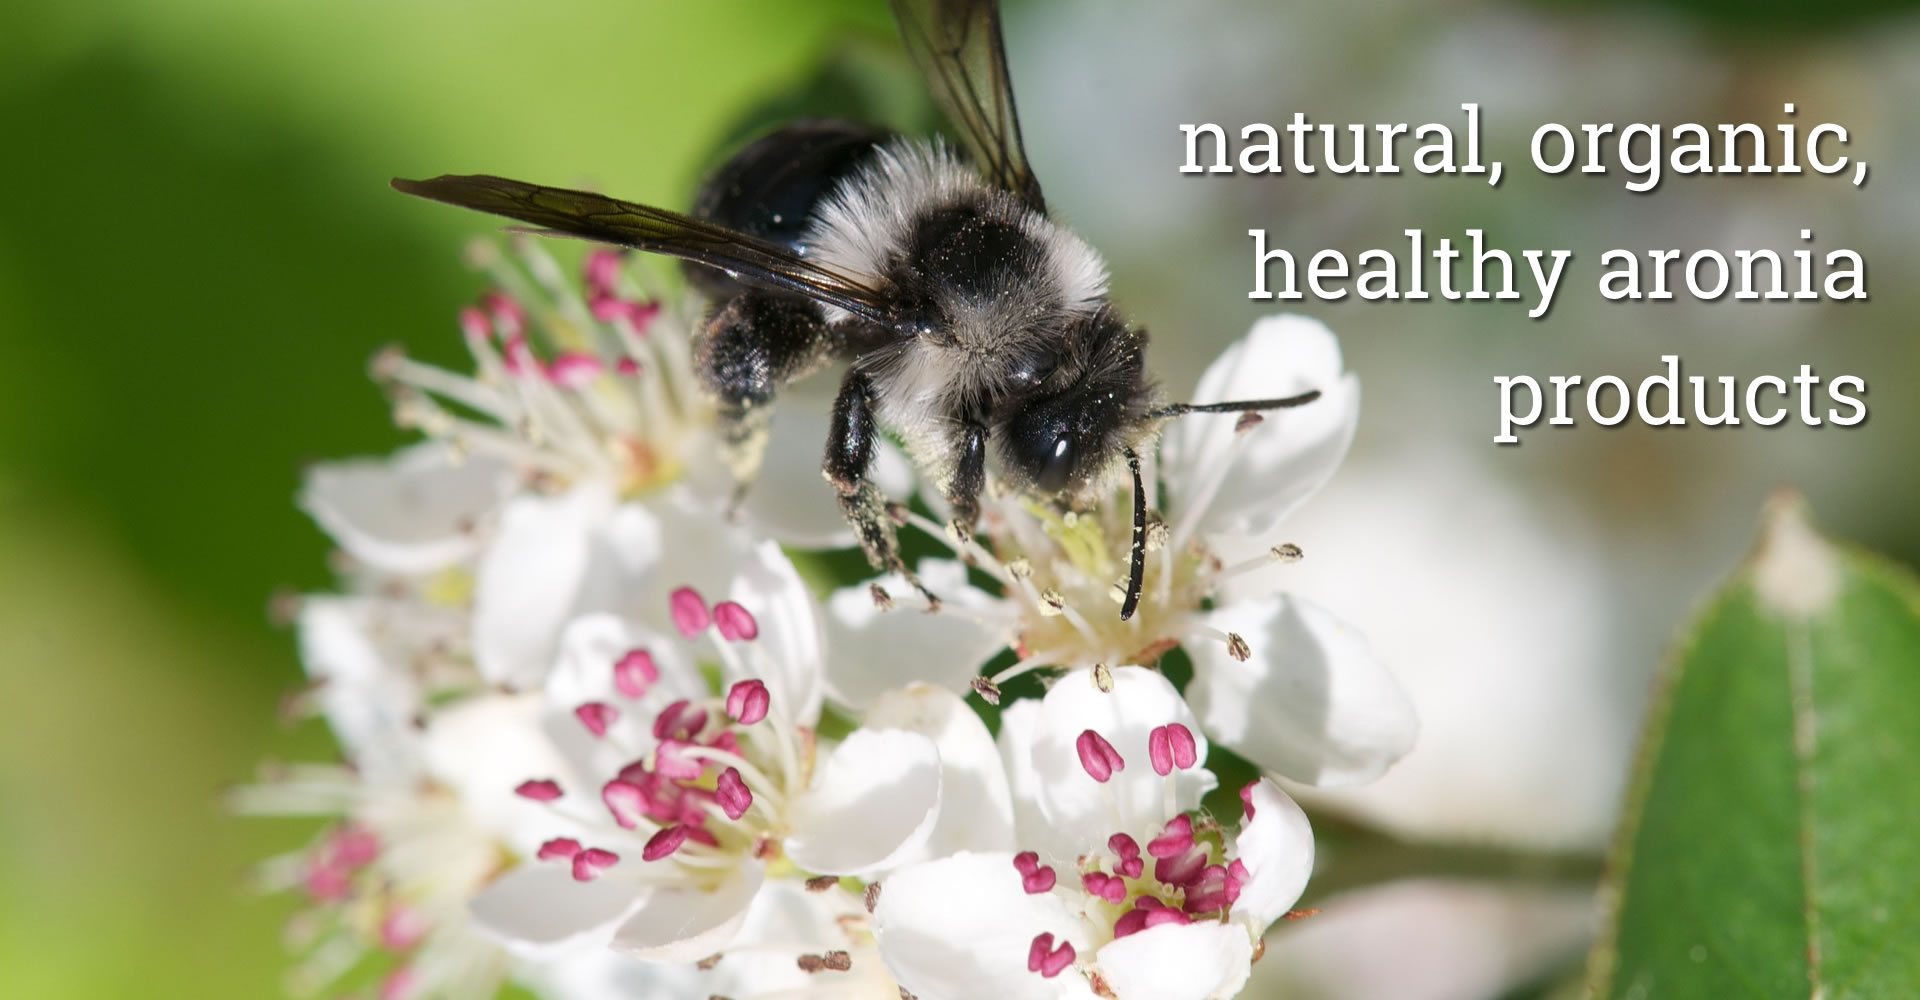 Healthy aronia products